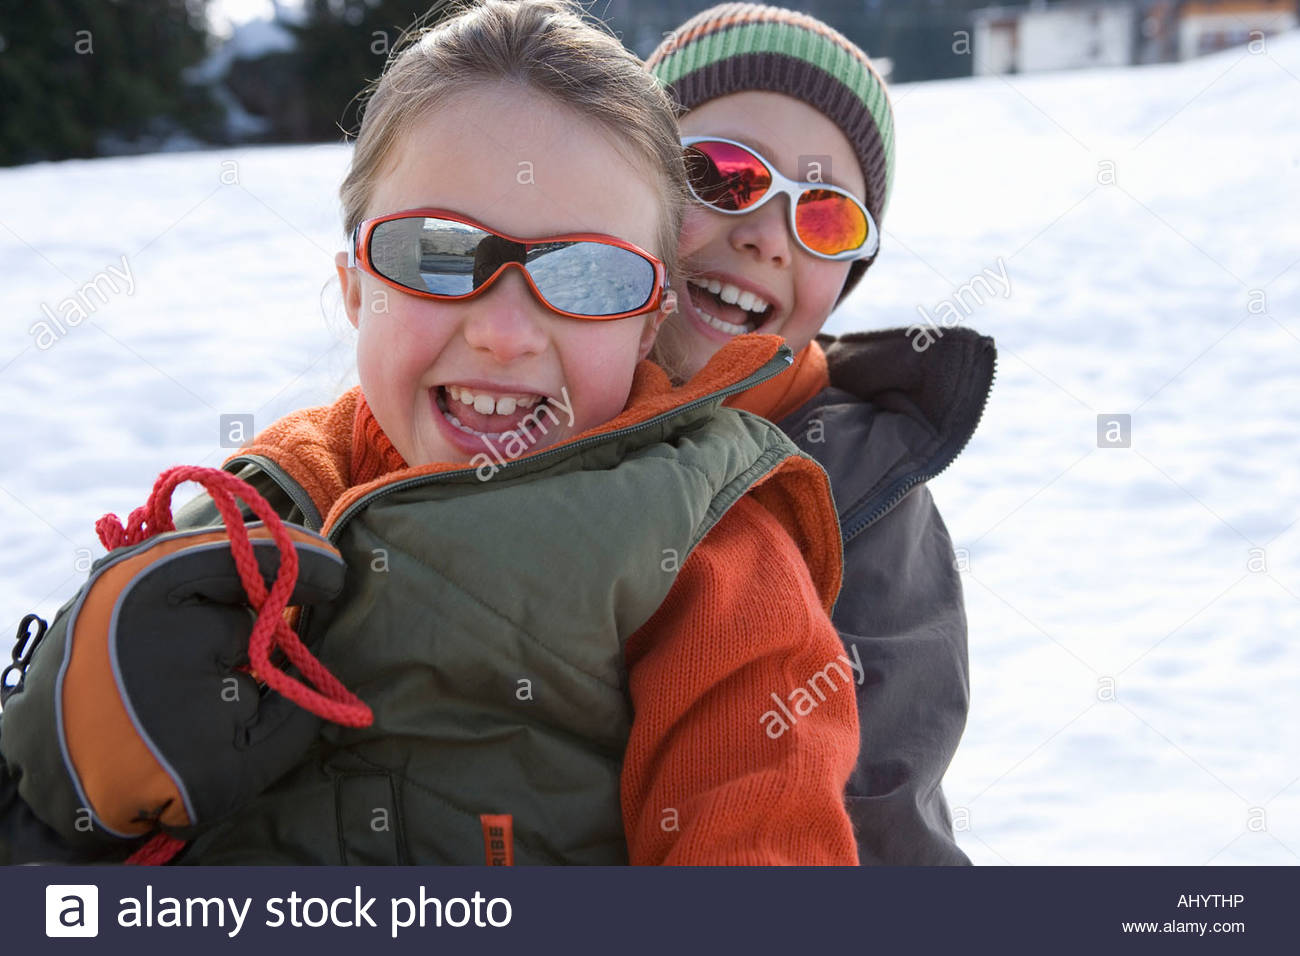 Boy and girl  on sled in snow, wearing sunglasses, smiling, portrait Stock Photo